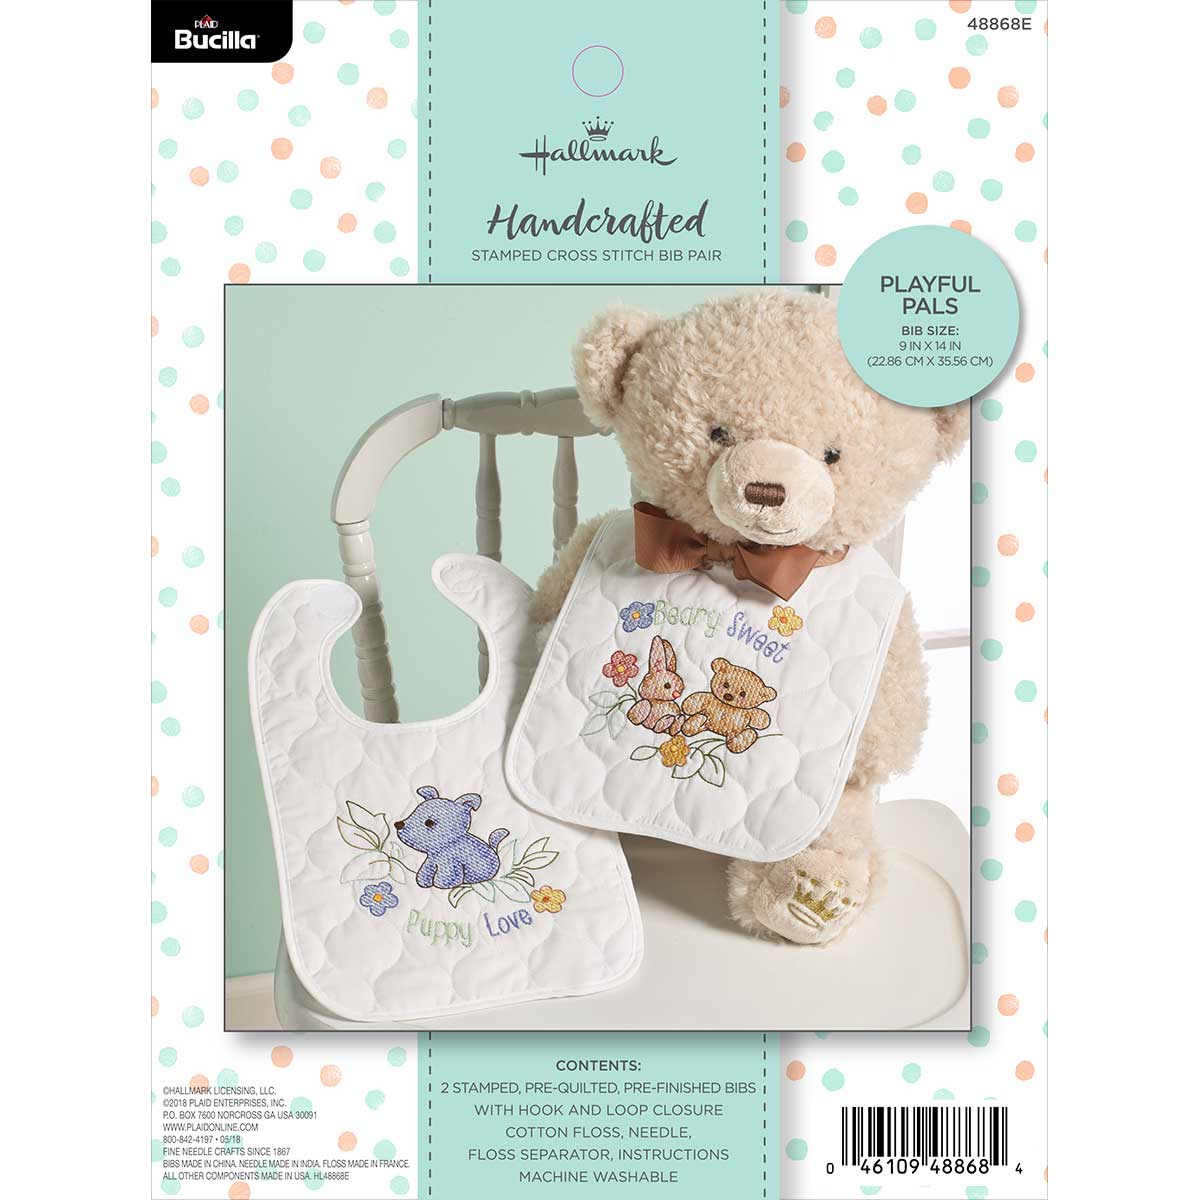 Bucilla ® Baby - Stamped Cross Stitch - Crib Ensembles - Hallmark - Playful Pals - Bib Pair Kit